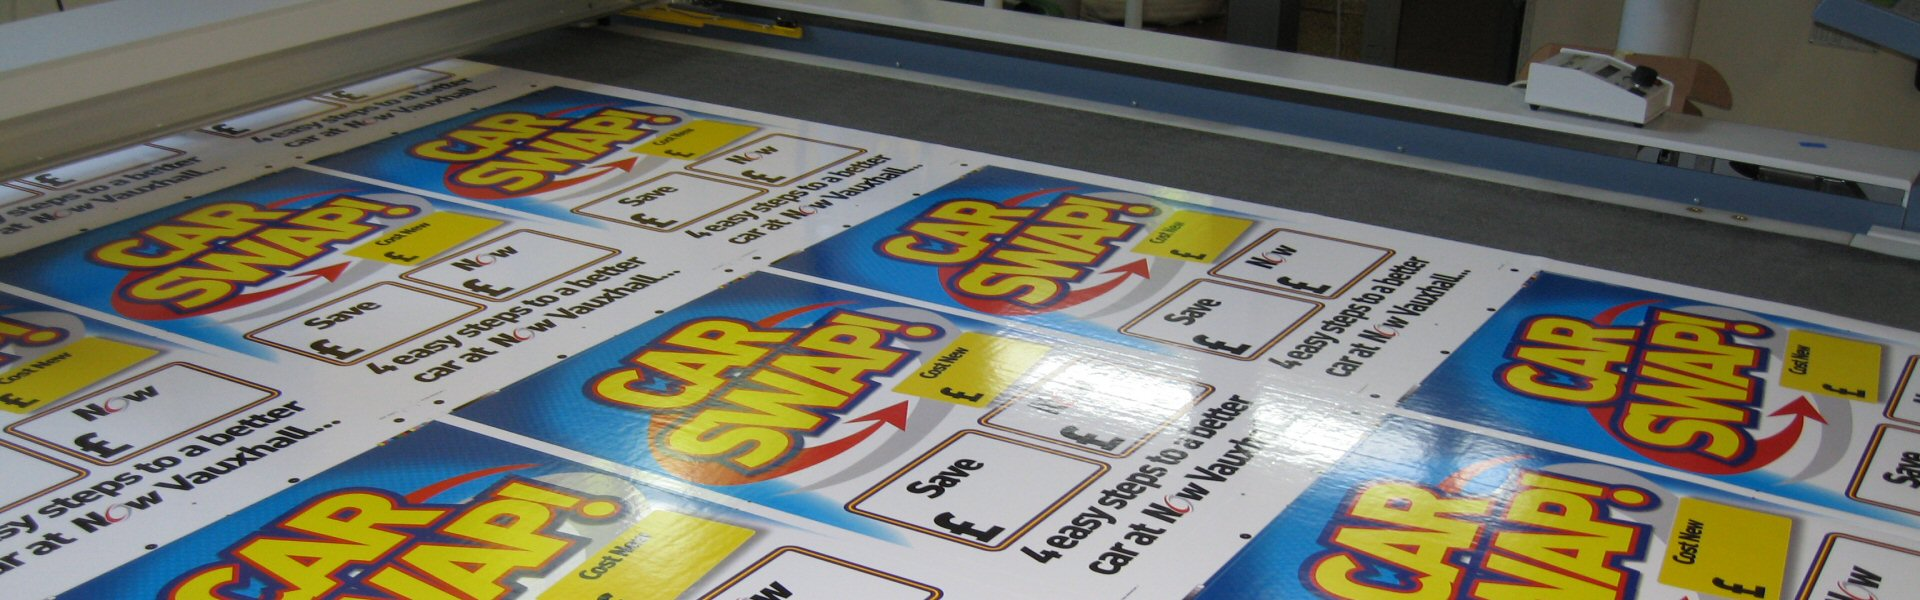 Bespoke Digital Printing - Evans Graphics